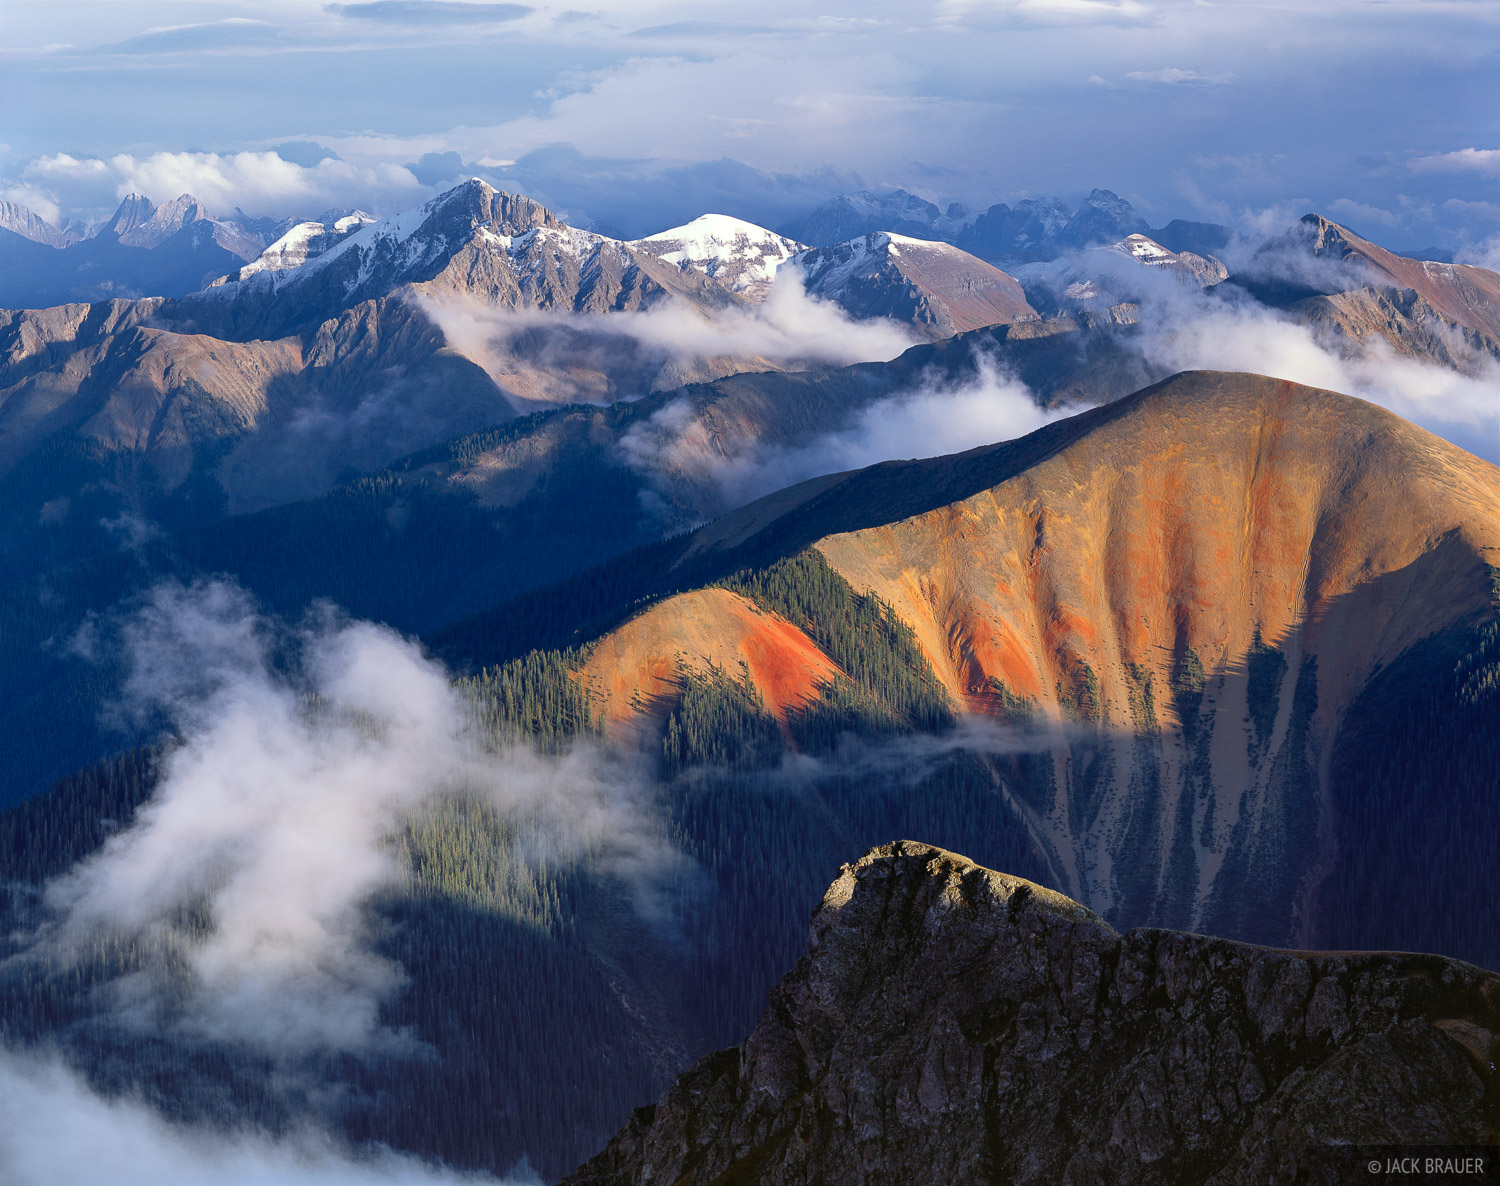 Sultan Mountain, Grenadier Range, Silverton, San Juan Mountains, Colorado, photo